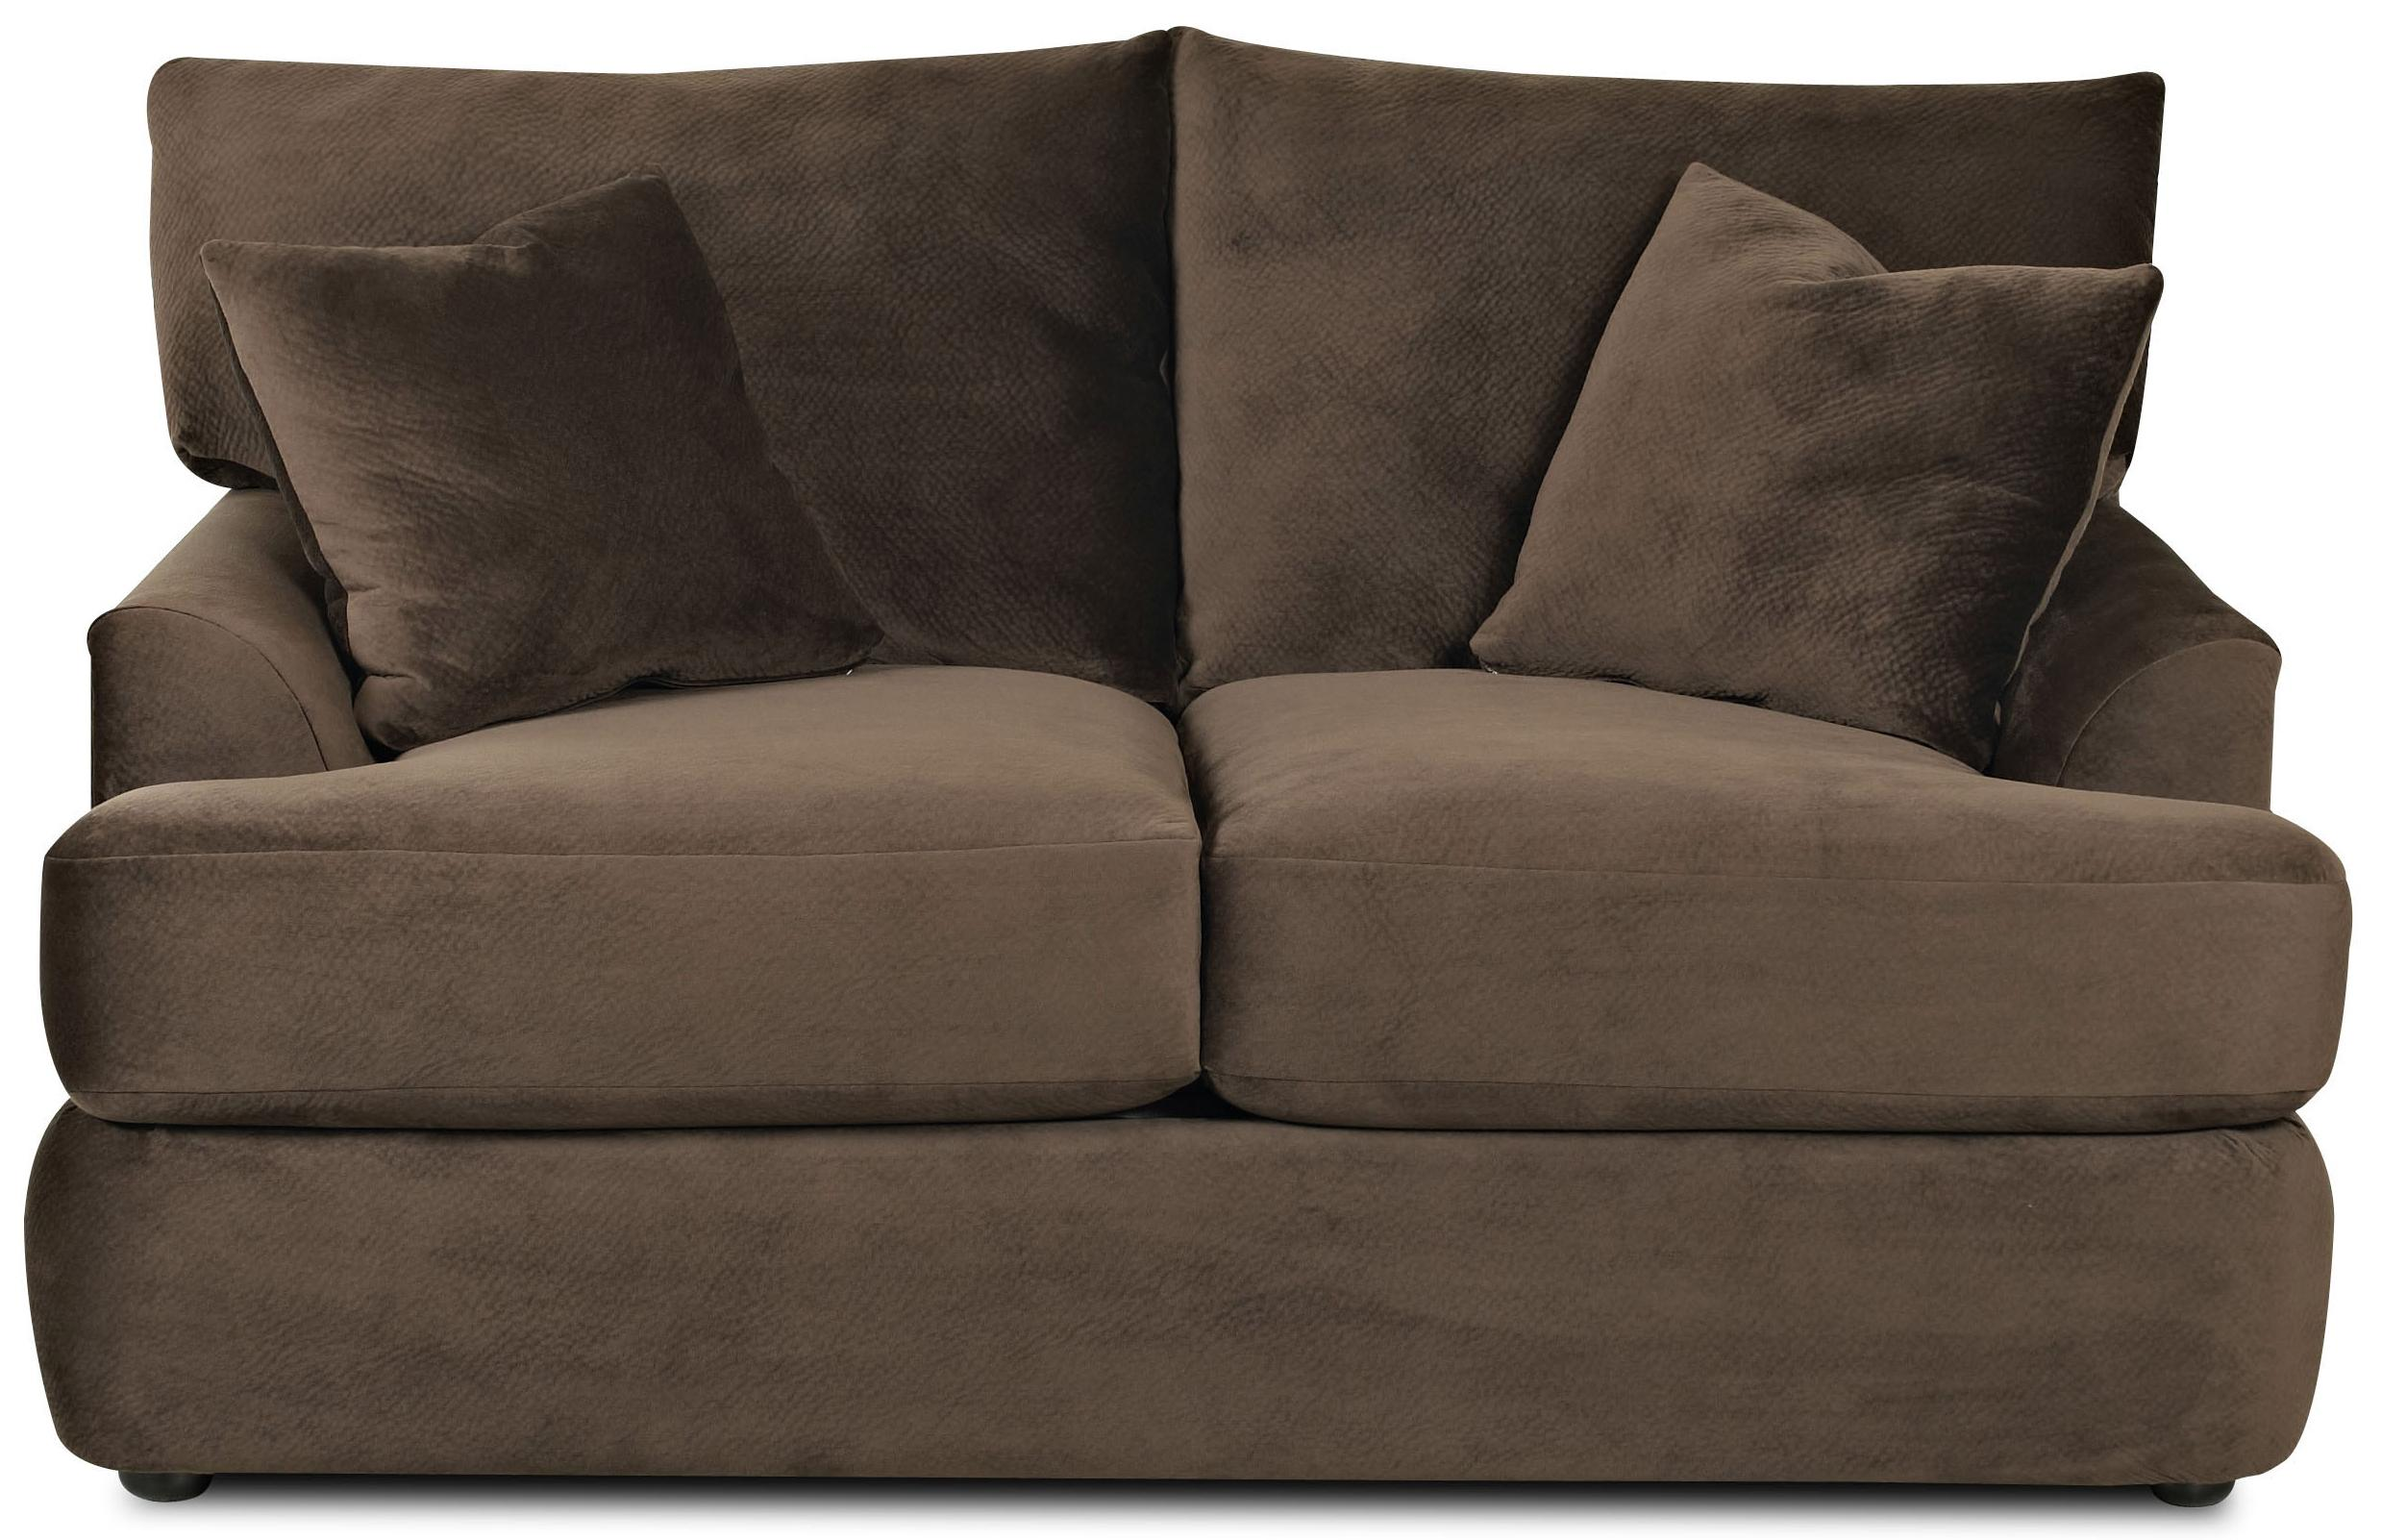 contemporary loveseat with rounded track arms by klaussner  wolf  - contemporary loveseat with rounded track arms